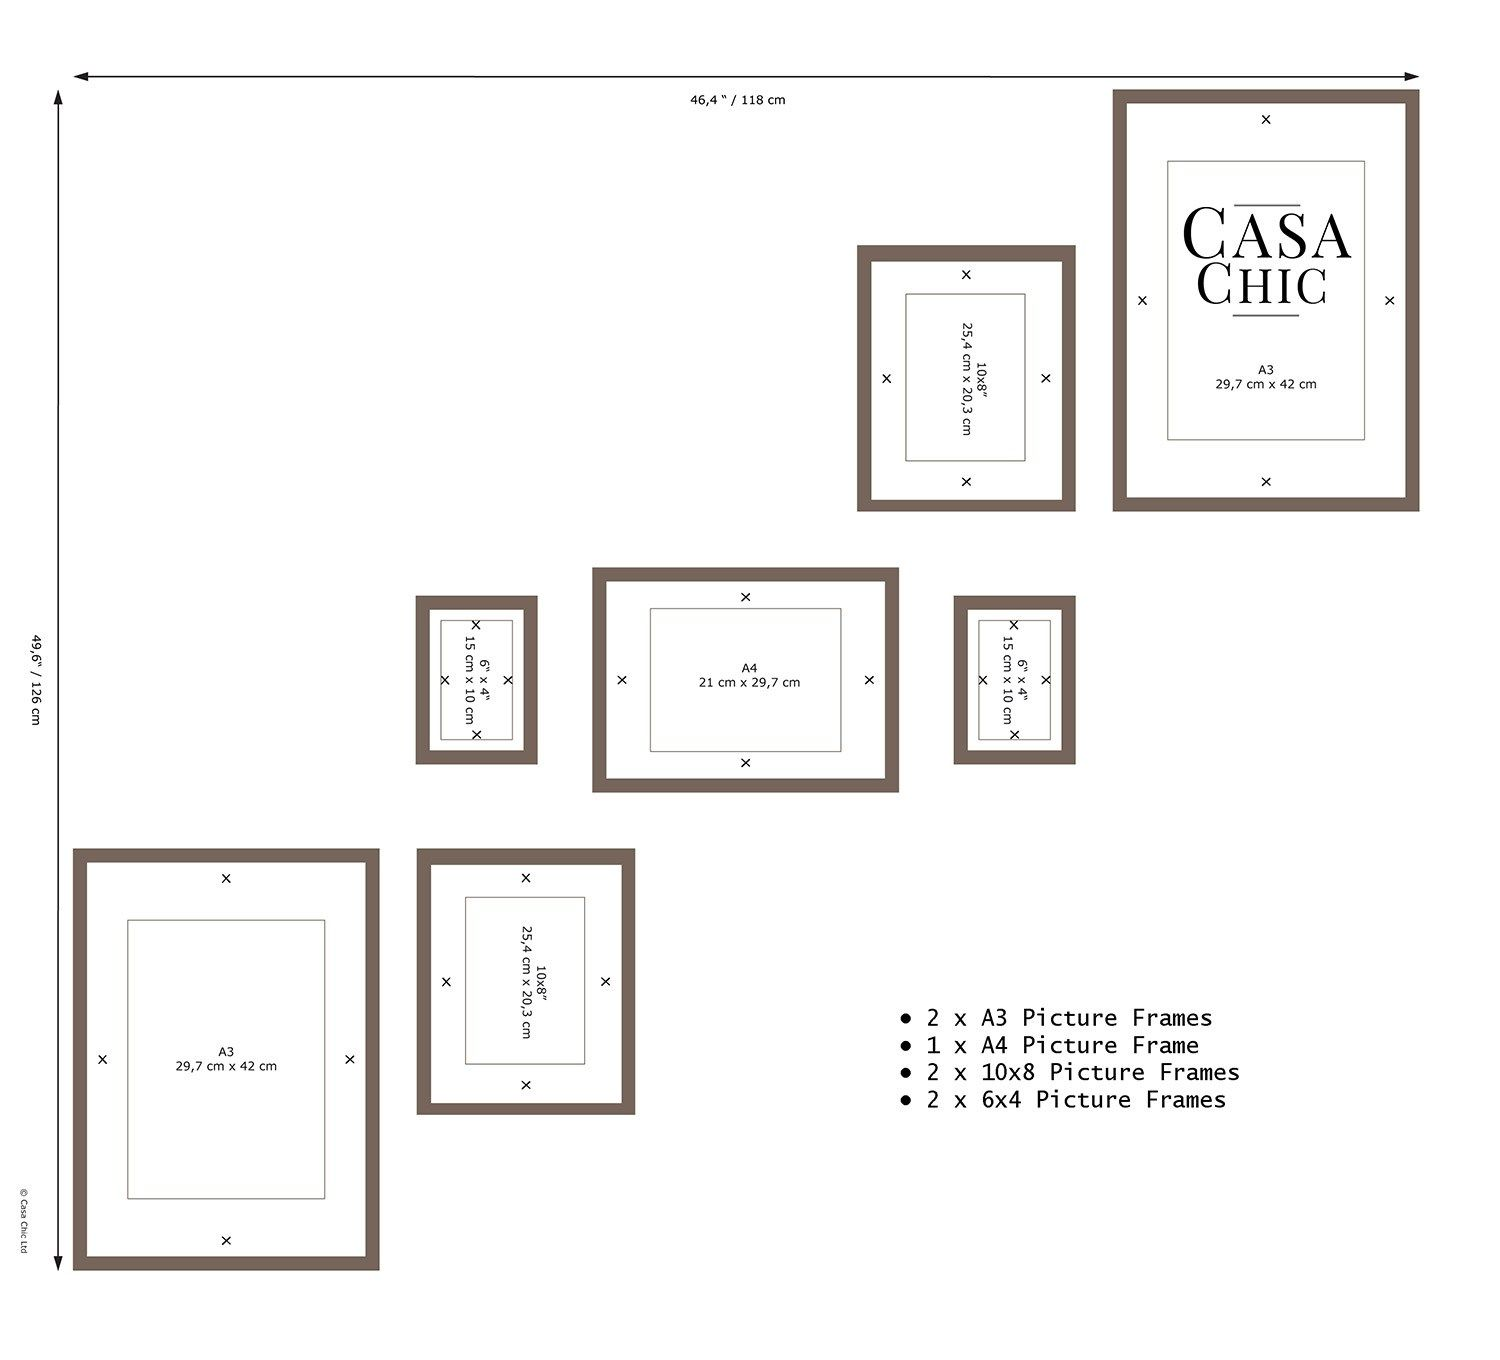 gallery wall template | Ideas for beautiful Gallerywalls | Pinterest ...